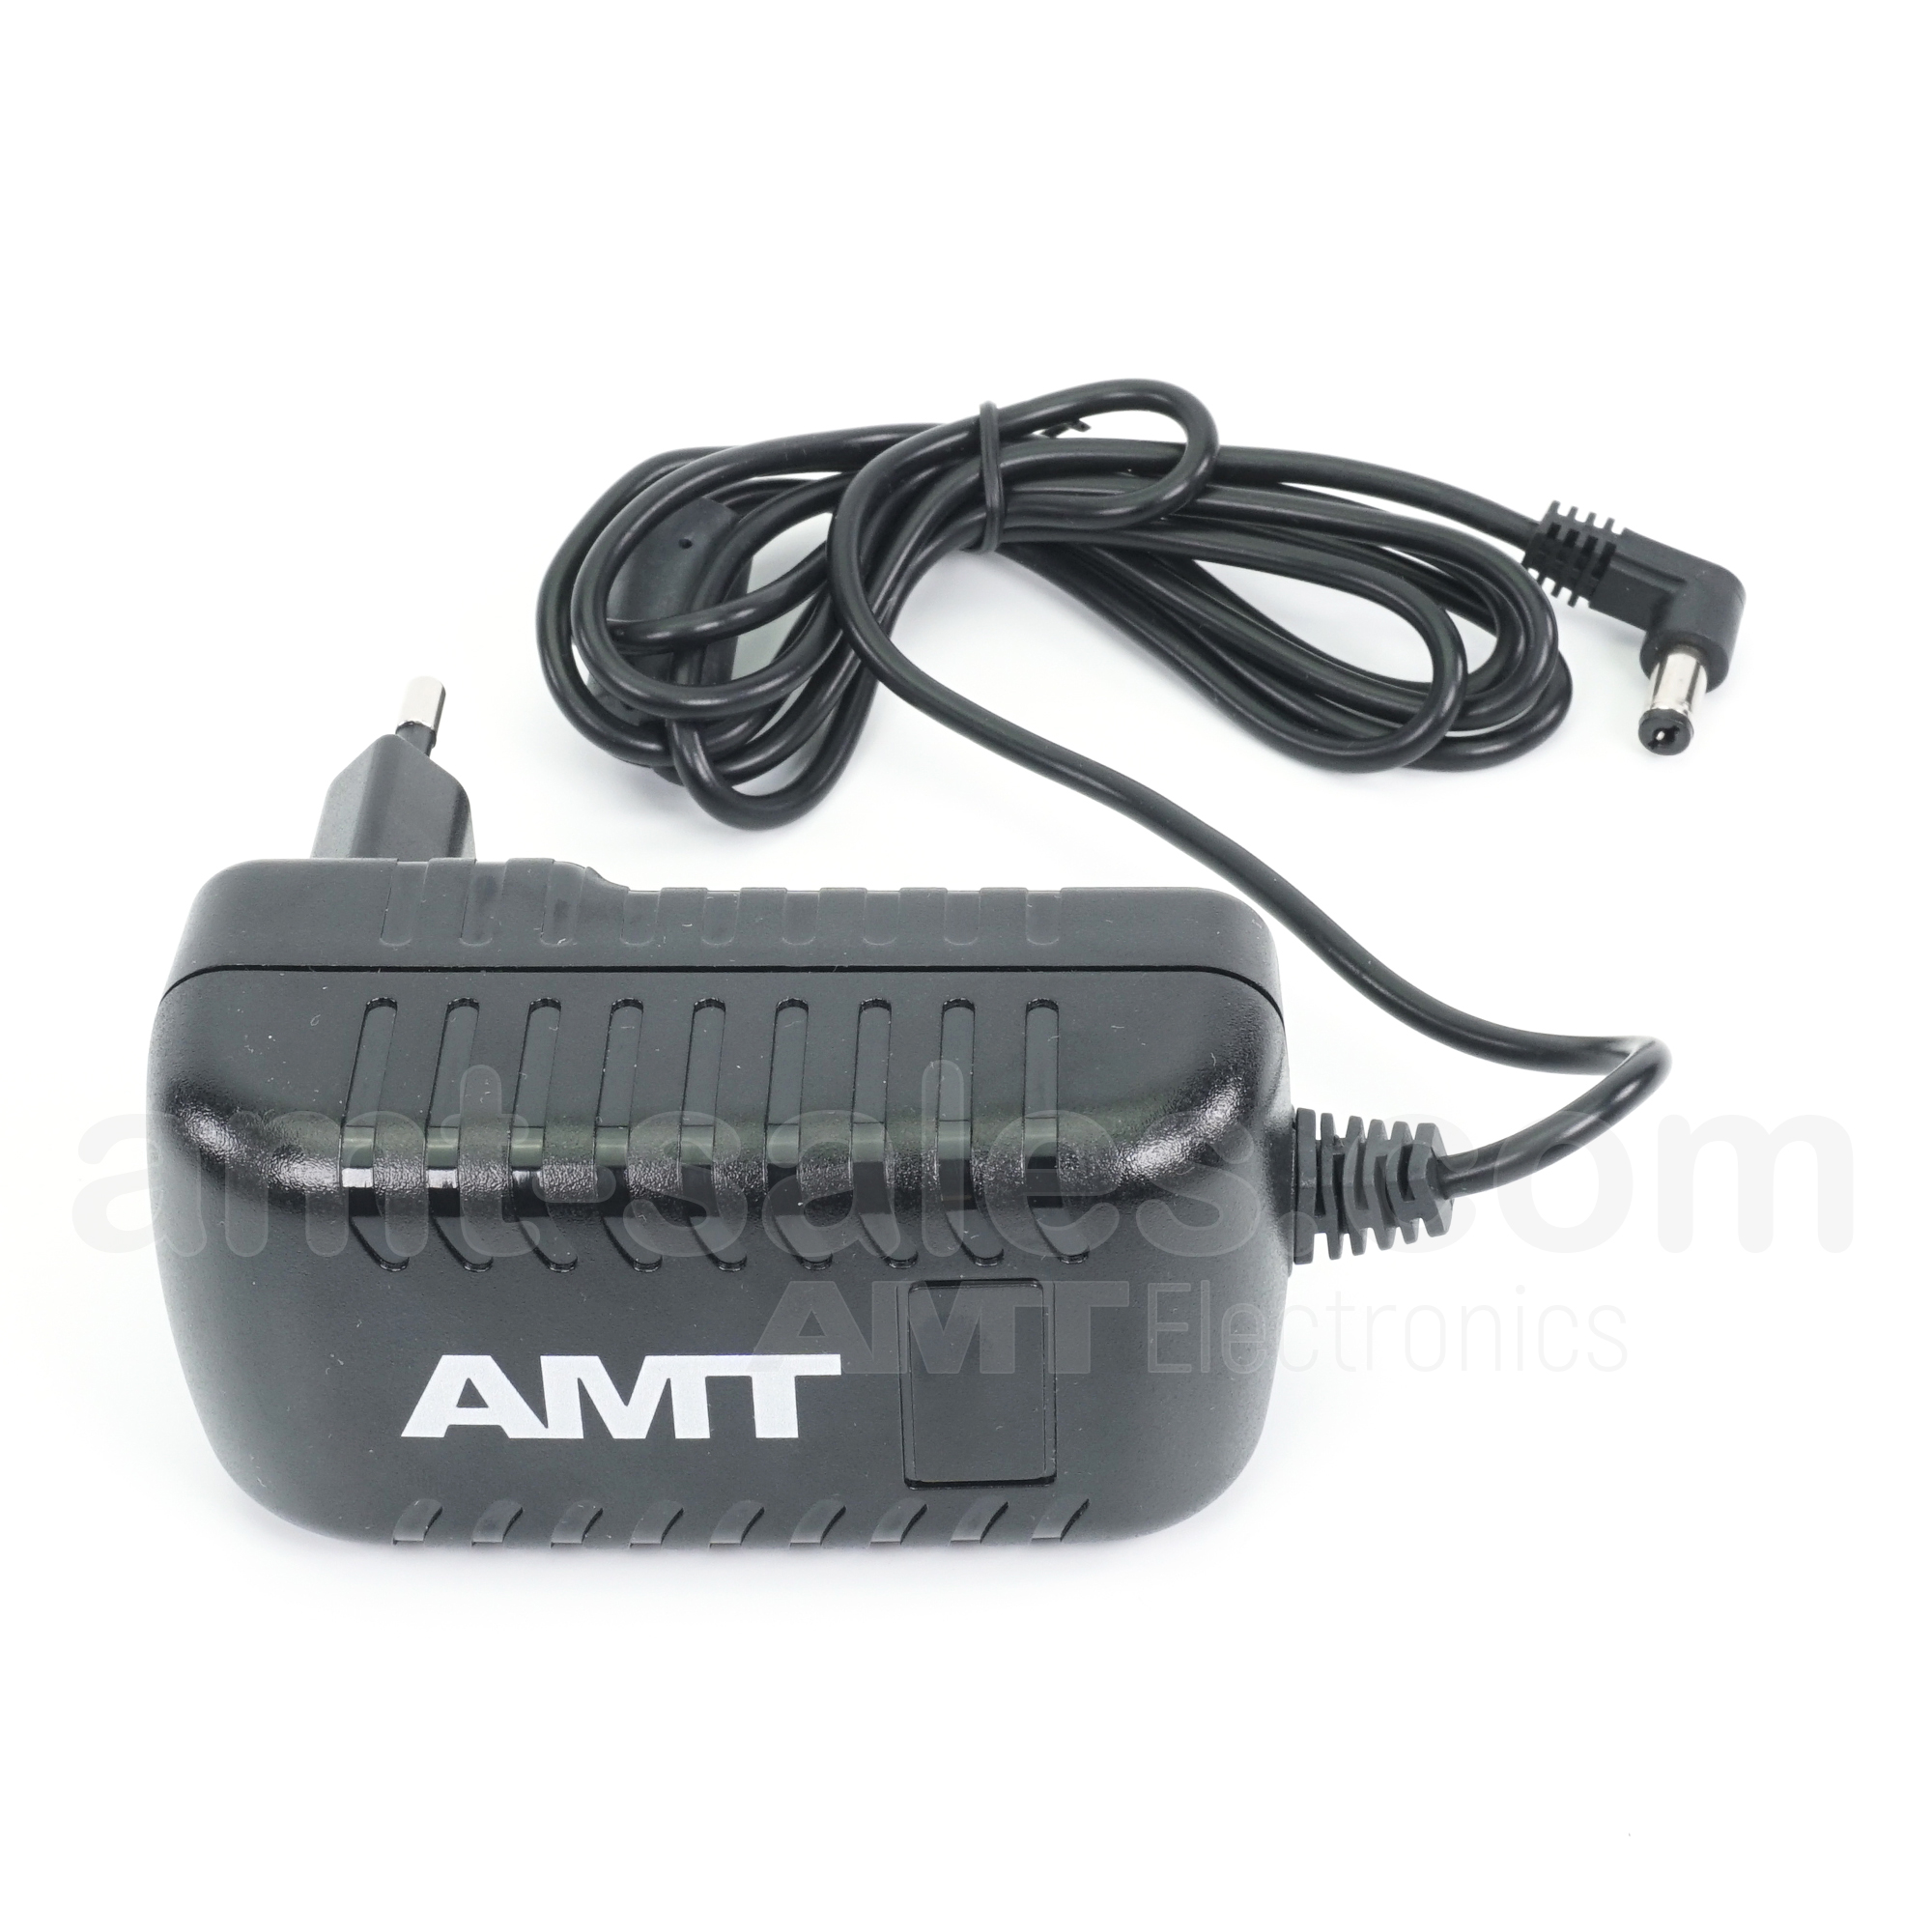 AMT DC 9V, 1.5А AC/DC - Noiseless AC/DC Adapter